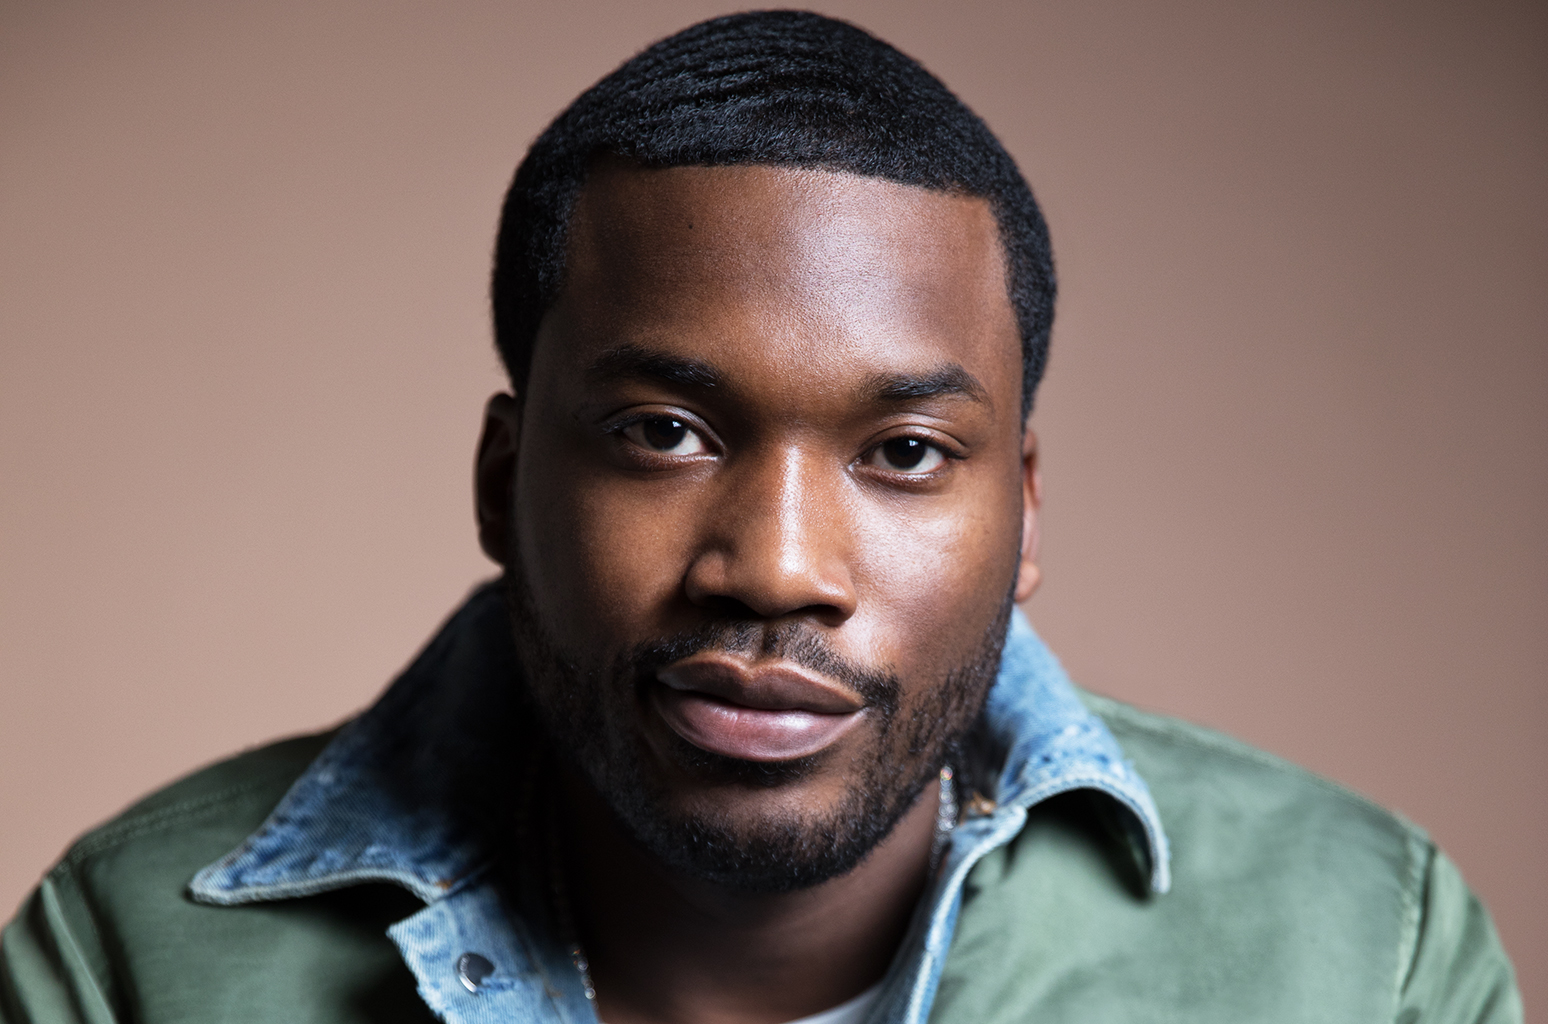 Meek Mill Honored With Social Justice Award from New York University